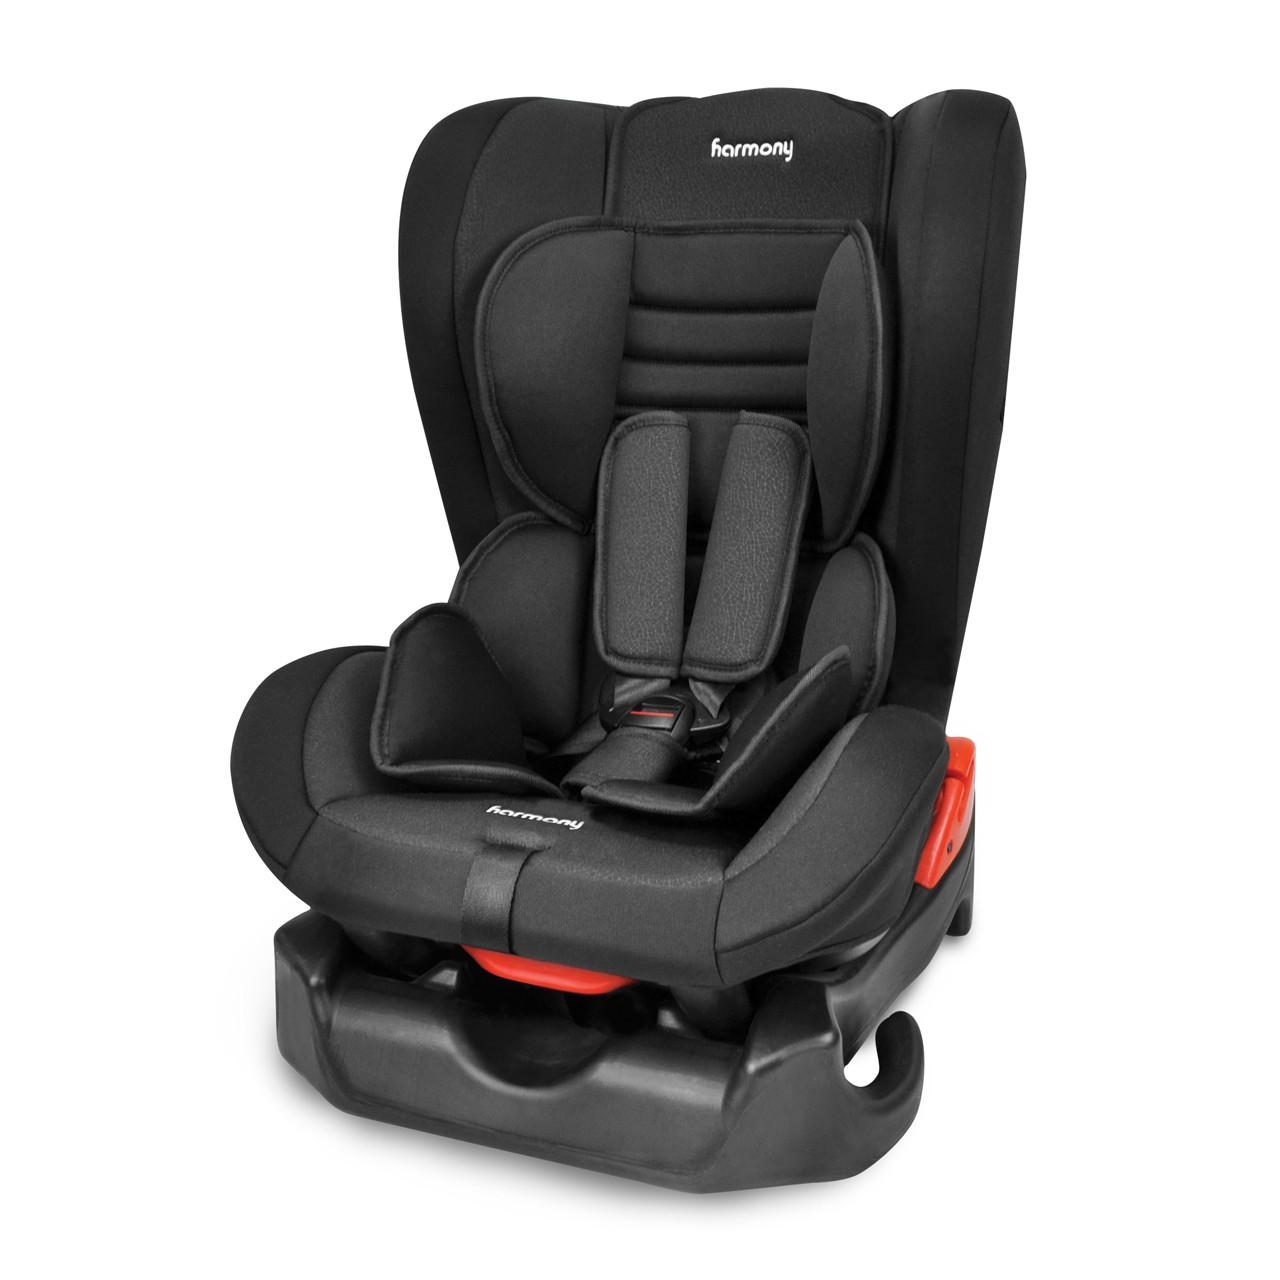 Baby Car Seat Fitting Service Merydian 2 In 1 Convertible Car Seat Featured Products